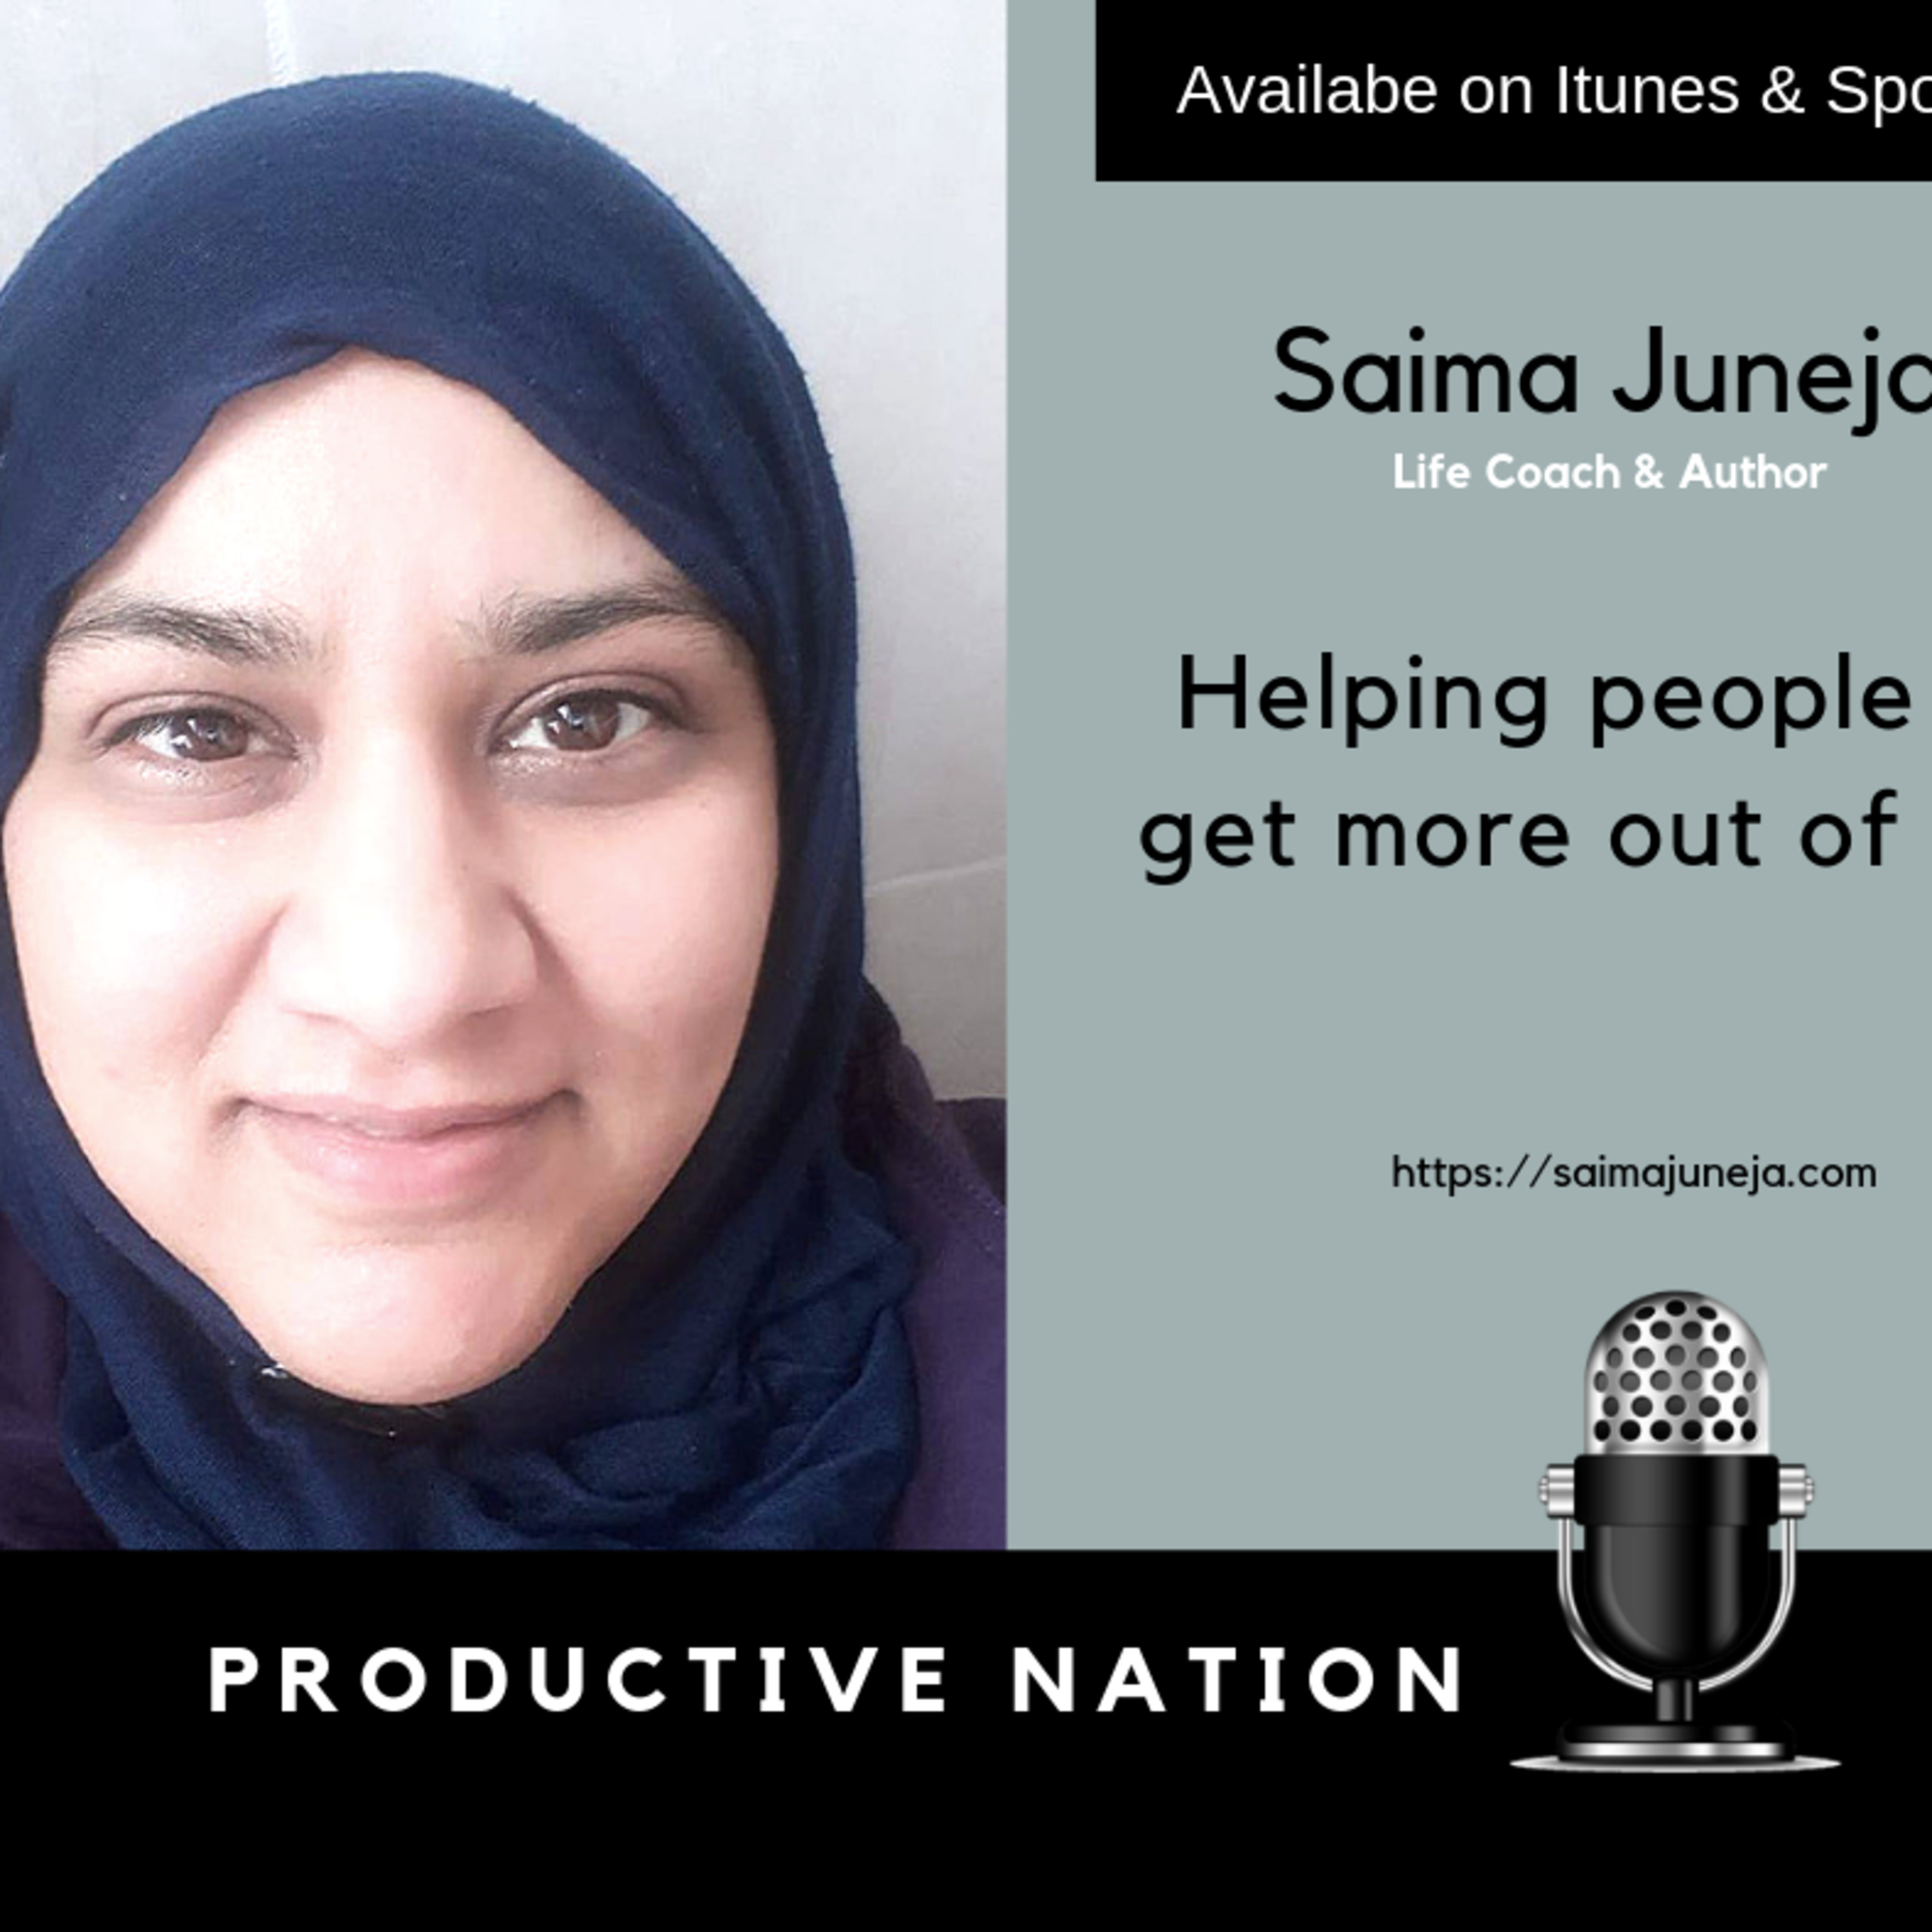 Helping people to get more out of life - Saima Juneja